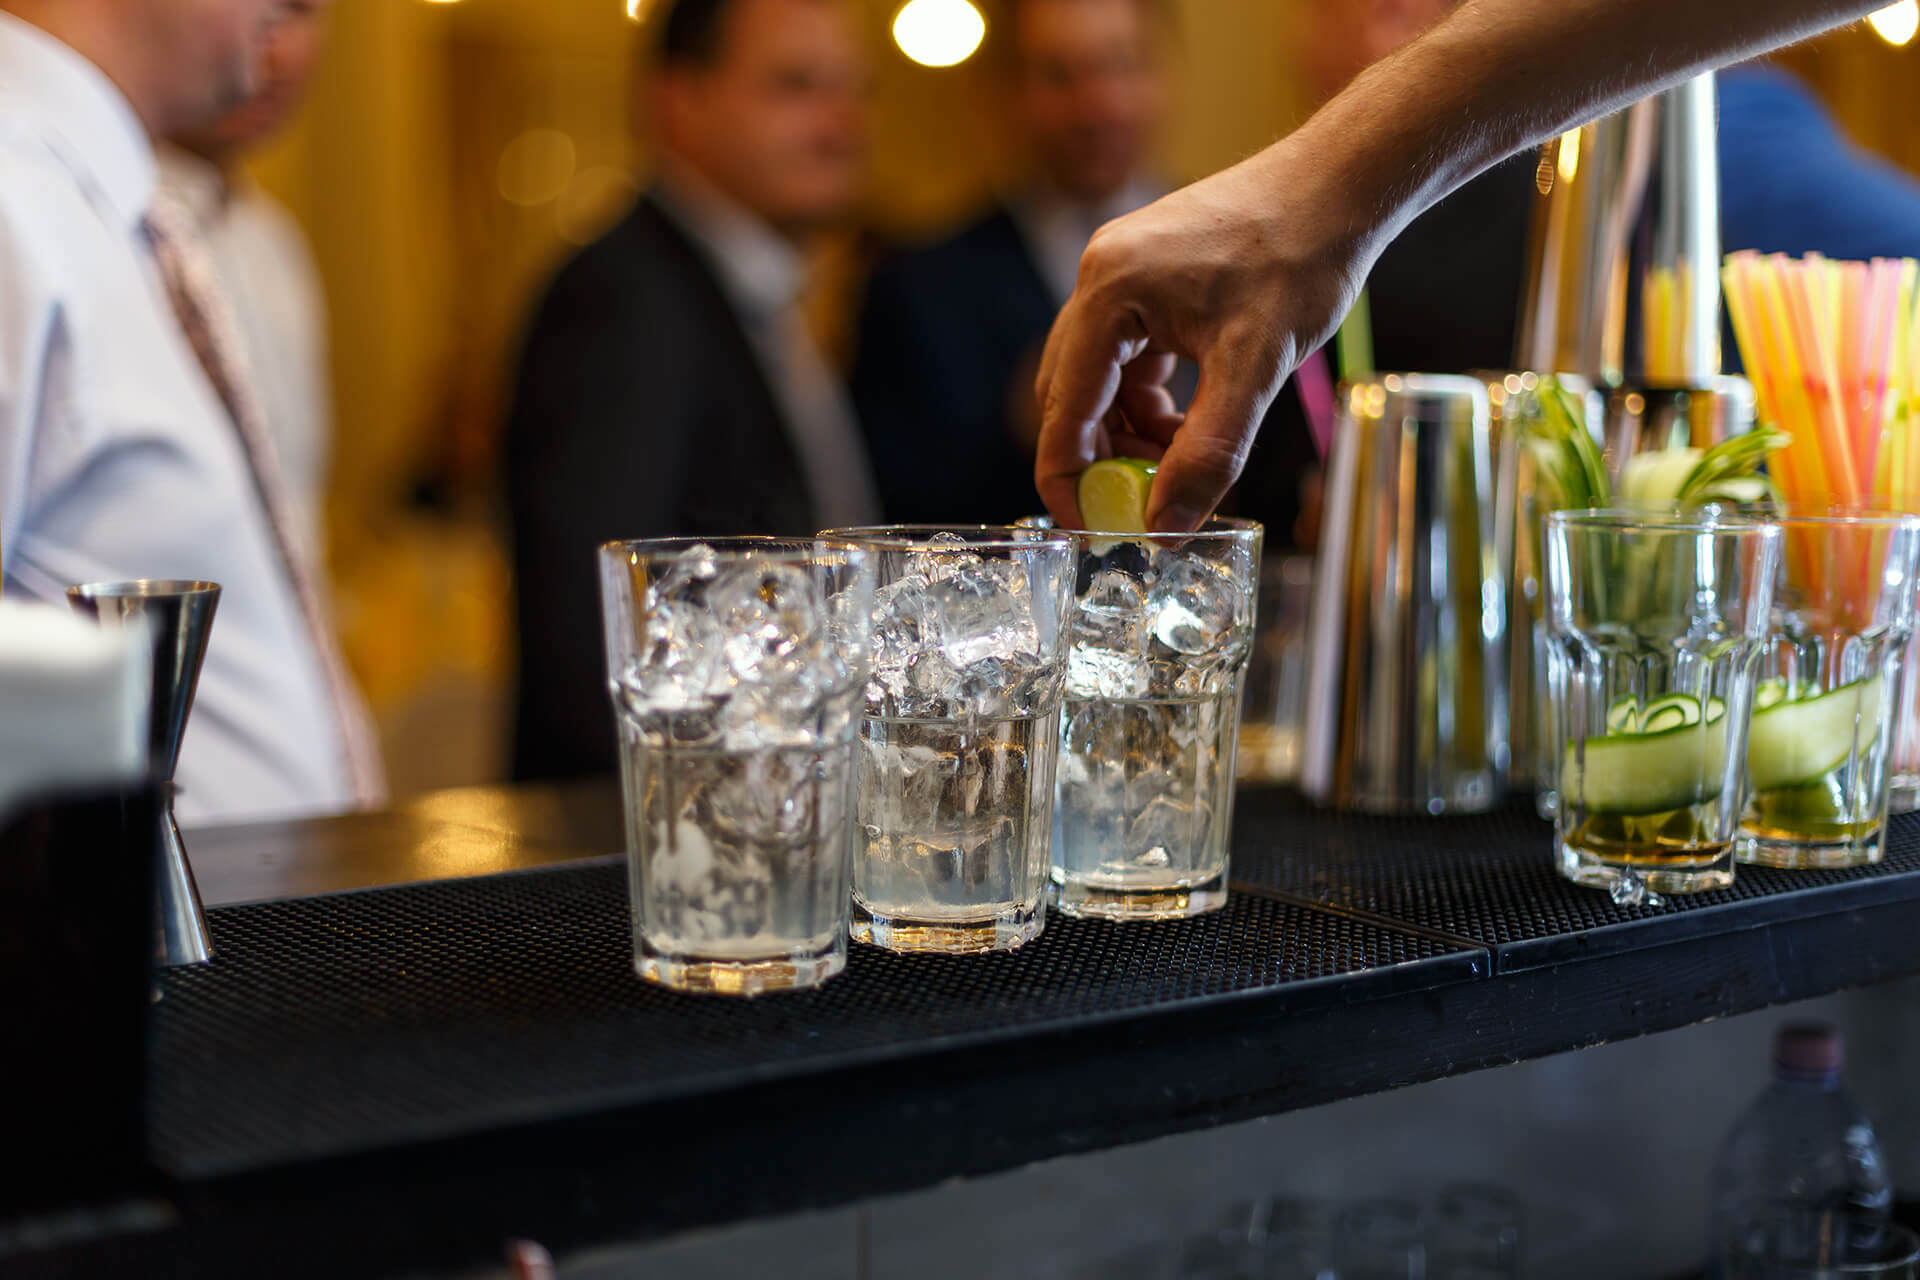 Picture of a bartender squeezing a lime into a glass on the bar. Represents liquor liability insurance